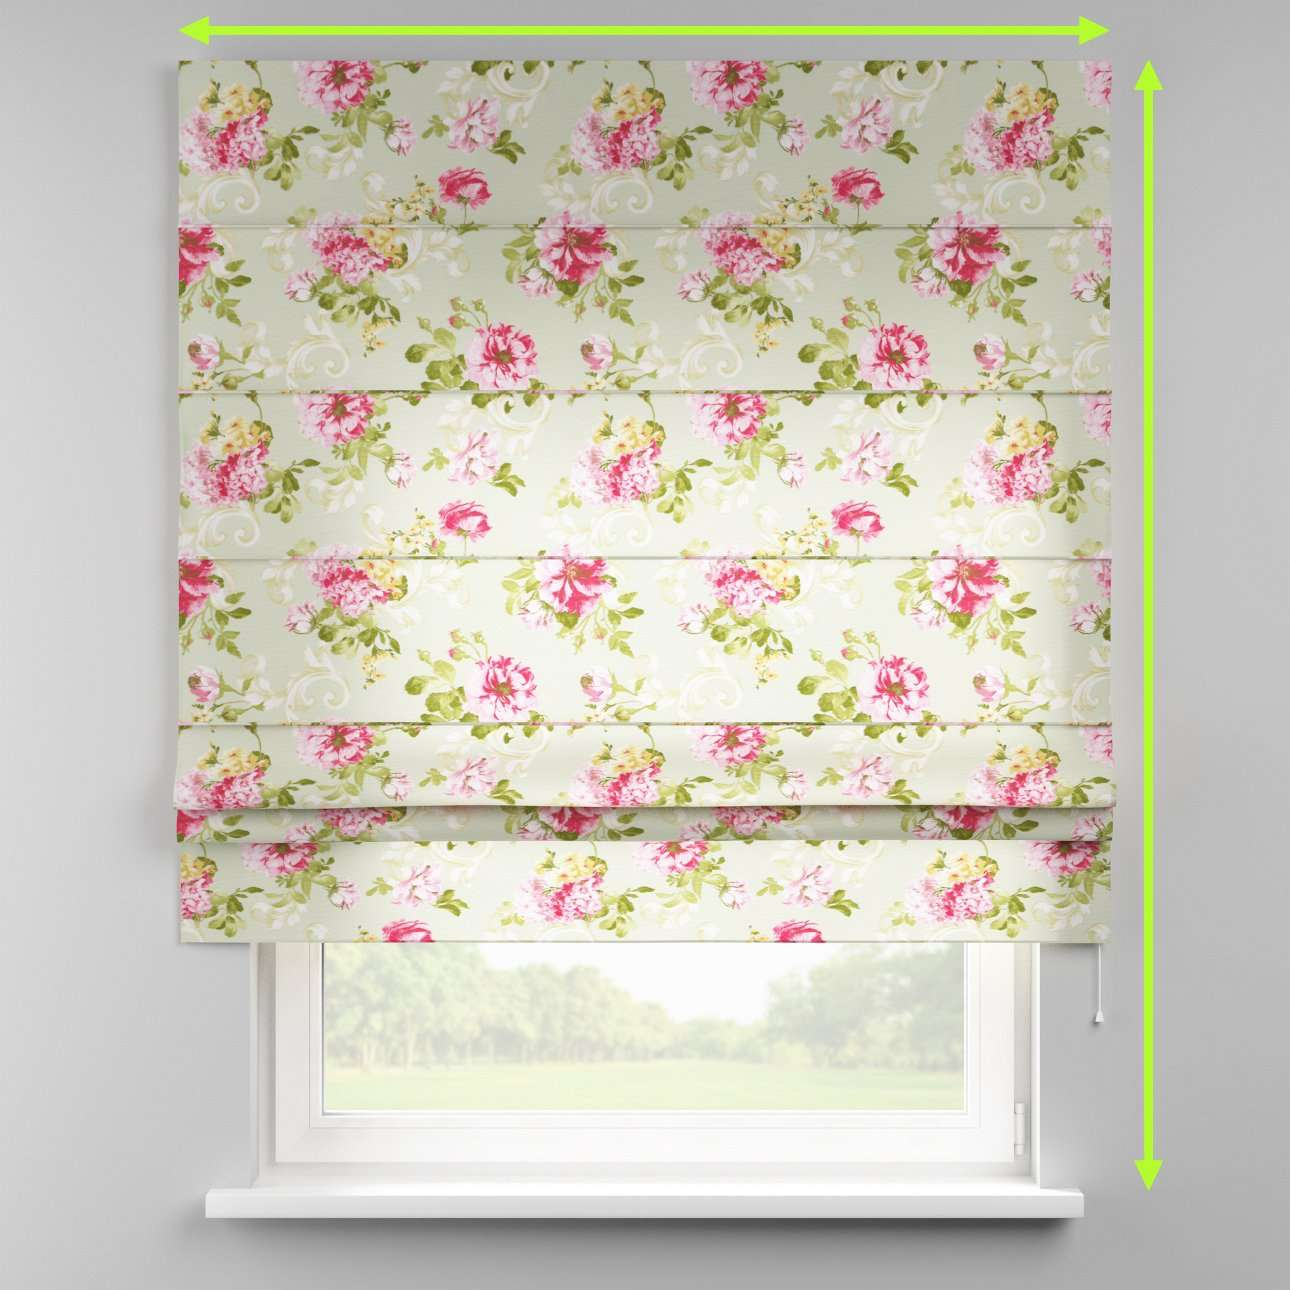 Padva roman blind  in collection Flowers, fabric: 311-10